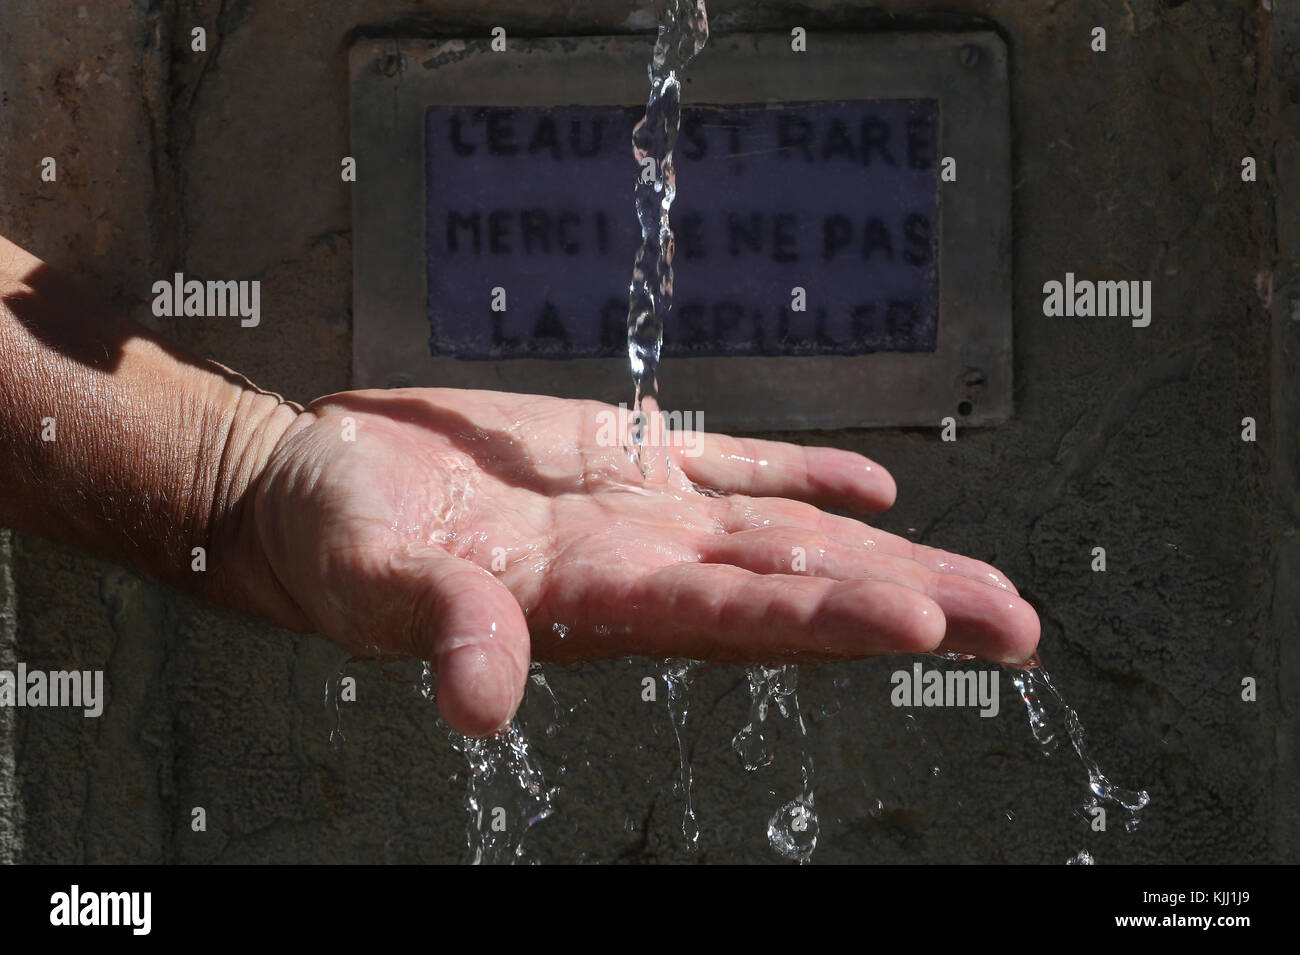 Hand in water fountain. Close-up.  France. - Stock Image